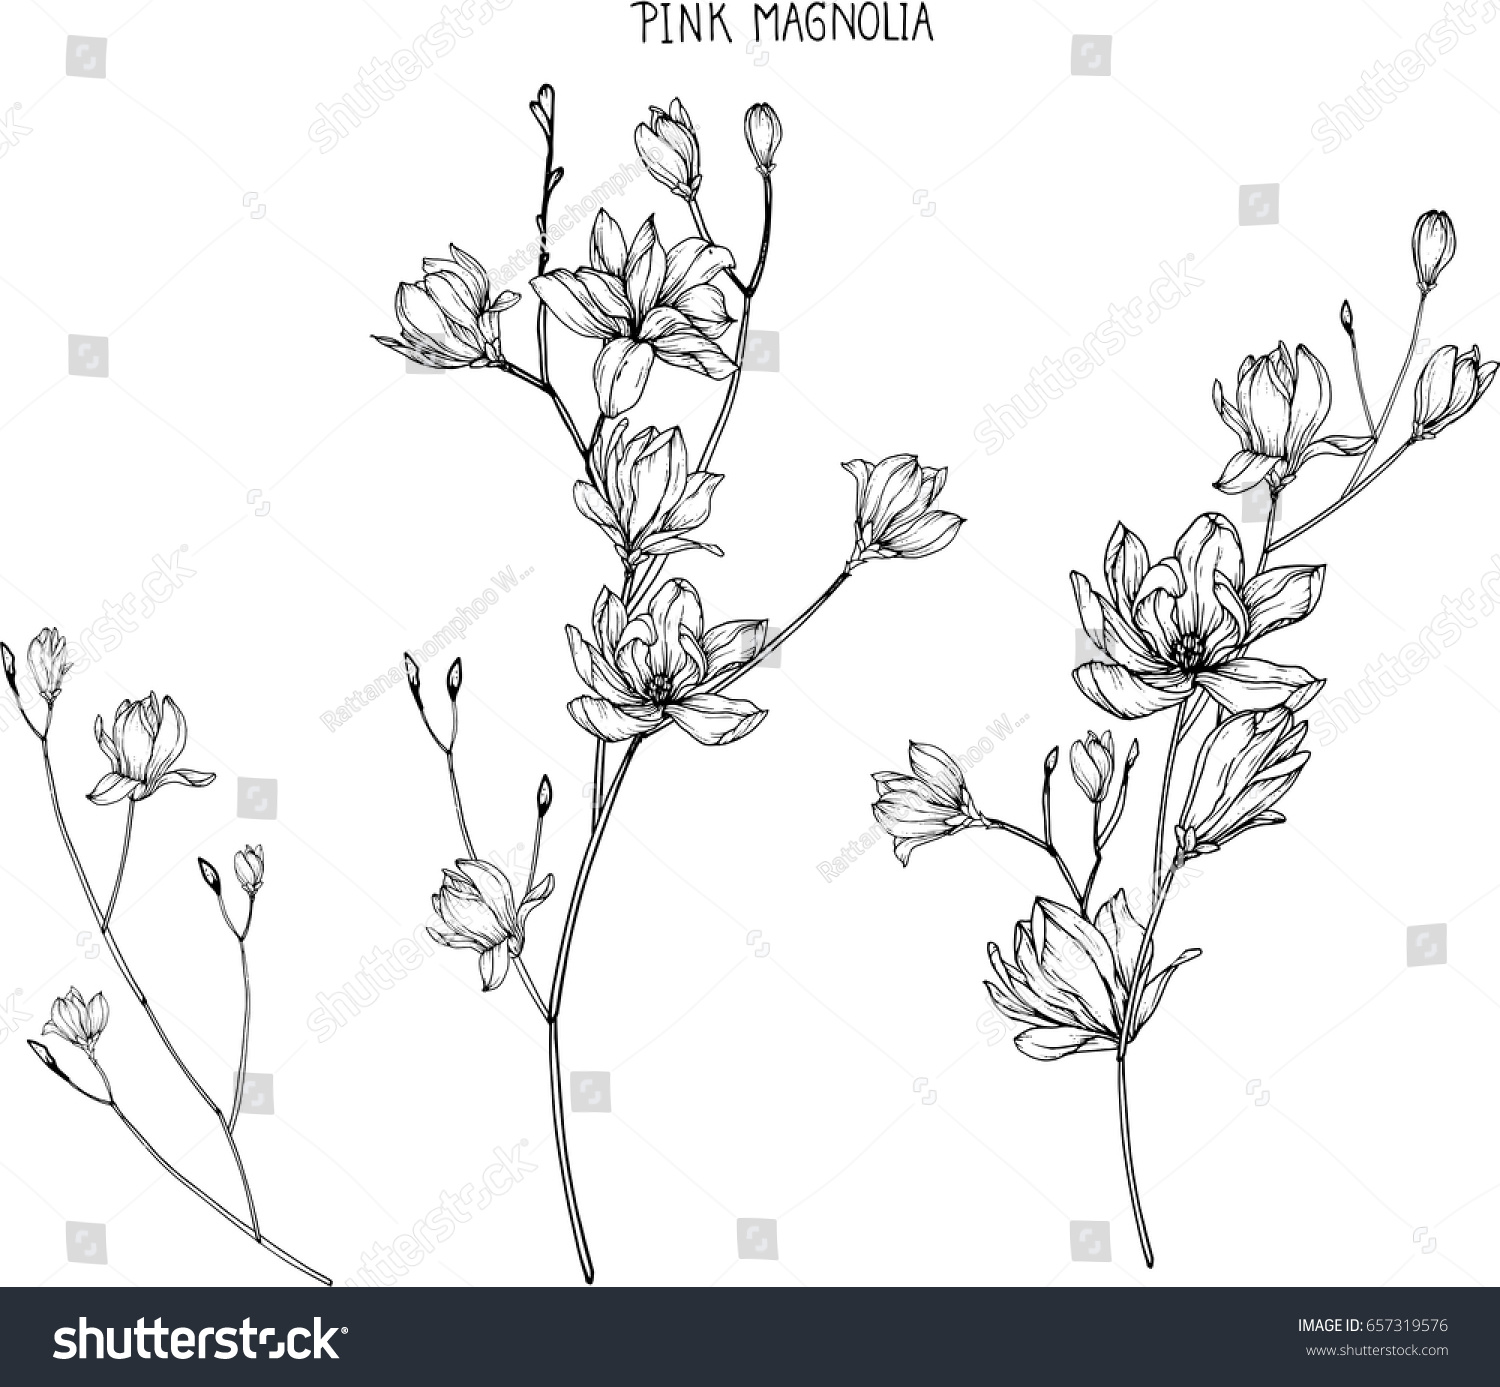 Magnolia Flower Line Drawing : Pink magnolia flowers drawing sketch lineart stock vector